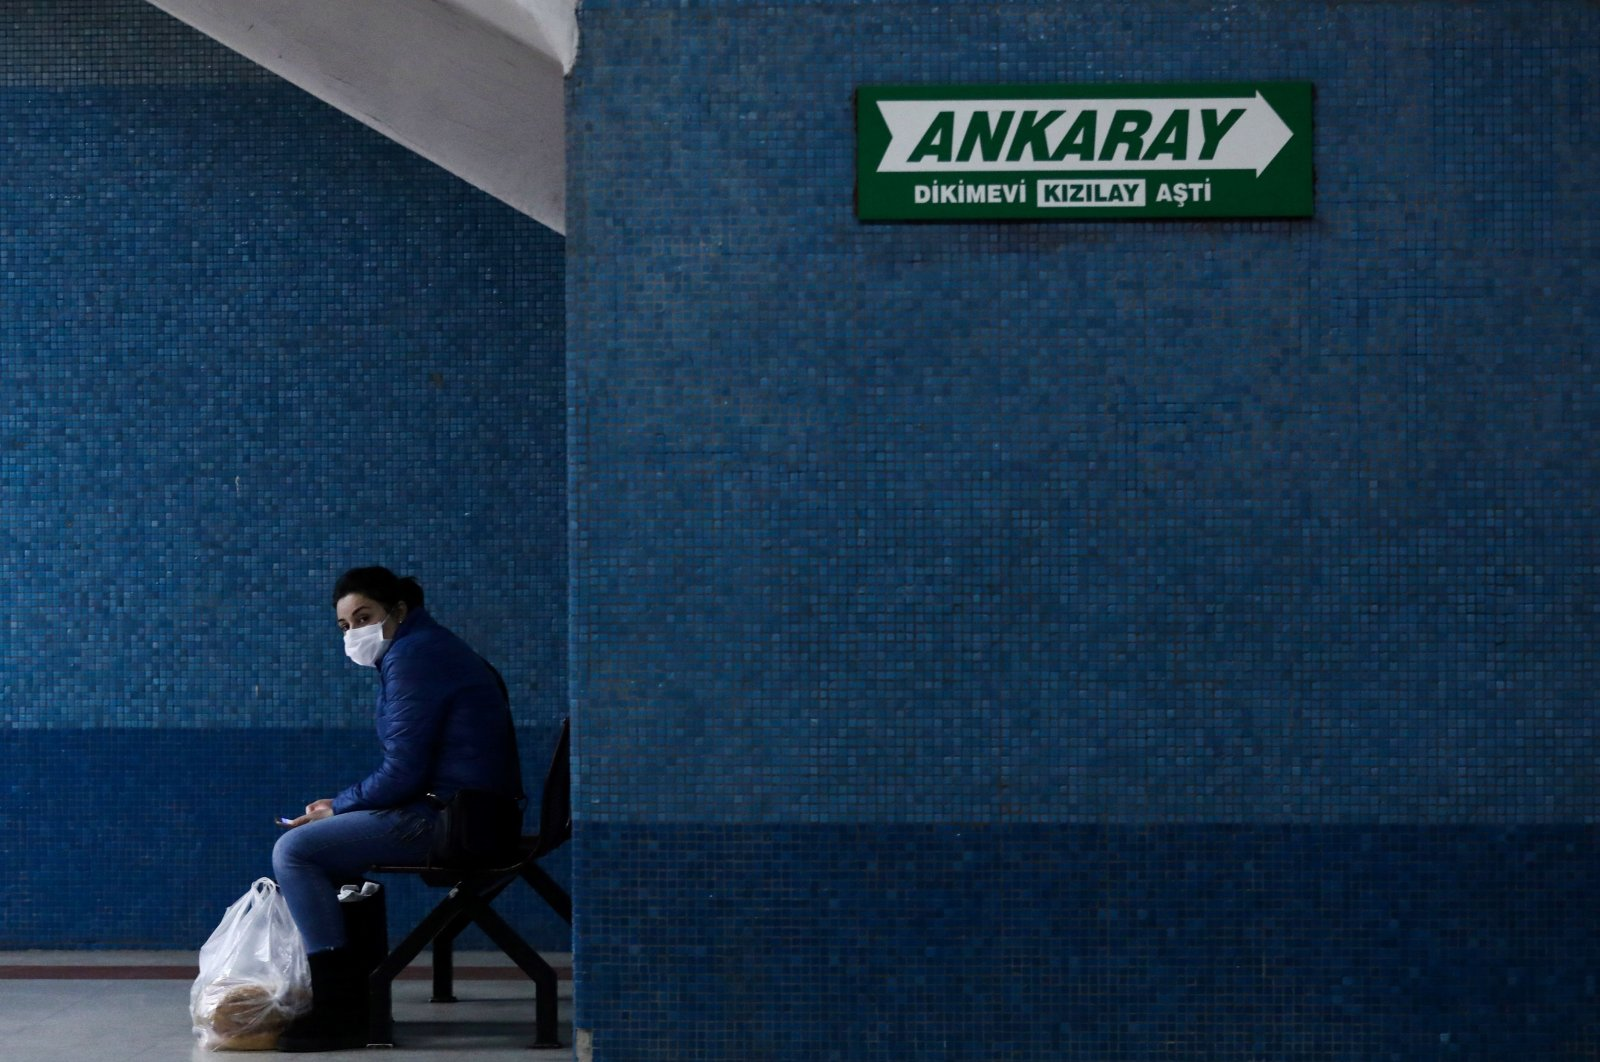 A woman wearing a face mask waits for the subway on the platform as the spread of the coronavirus continues in Ankara, April 16, 2020. (AFP Photo)